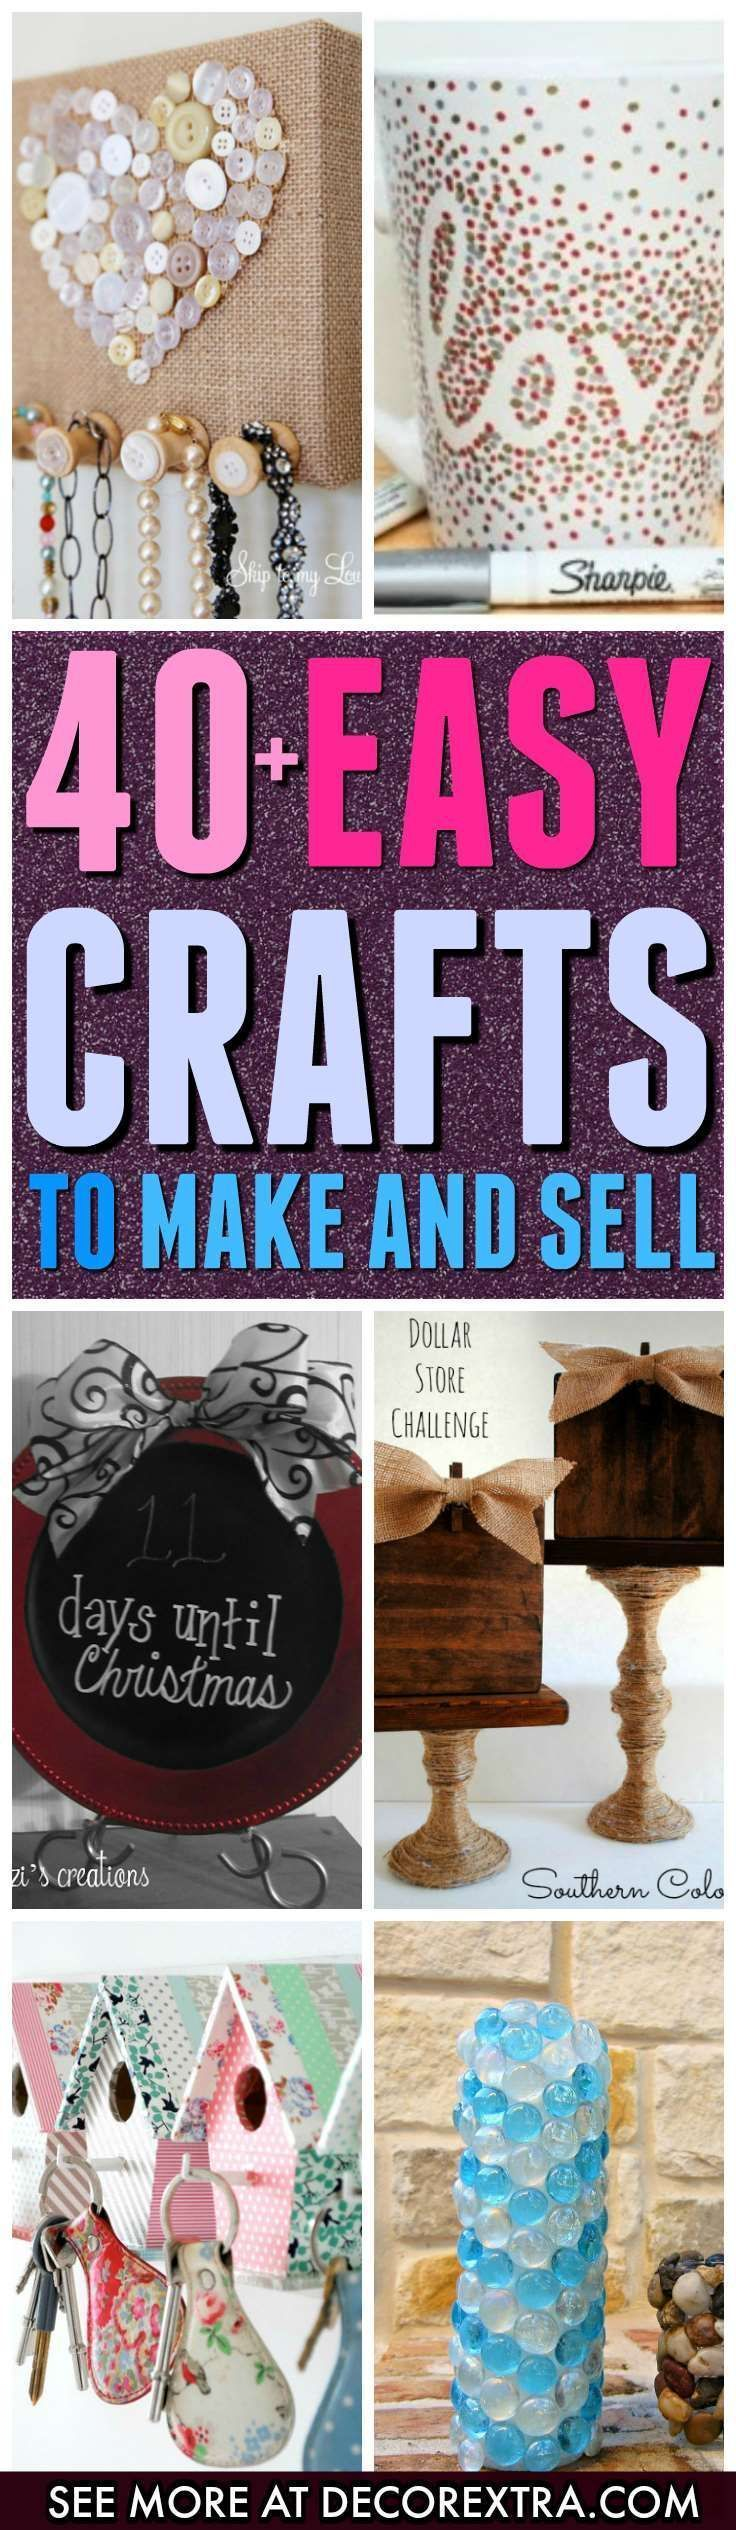 Crafts to Make and Sell, Easy DIY Ideas, Crafts to sell on etsy for ...